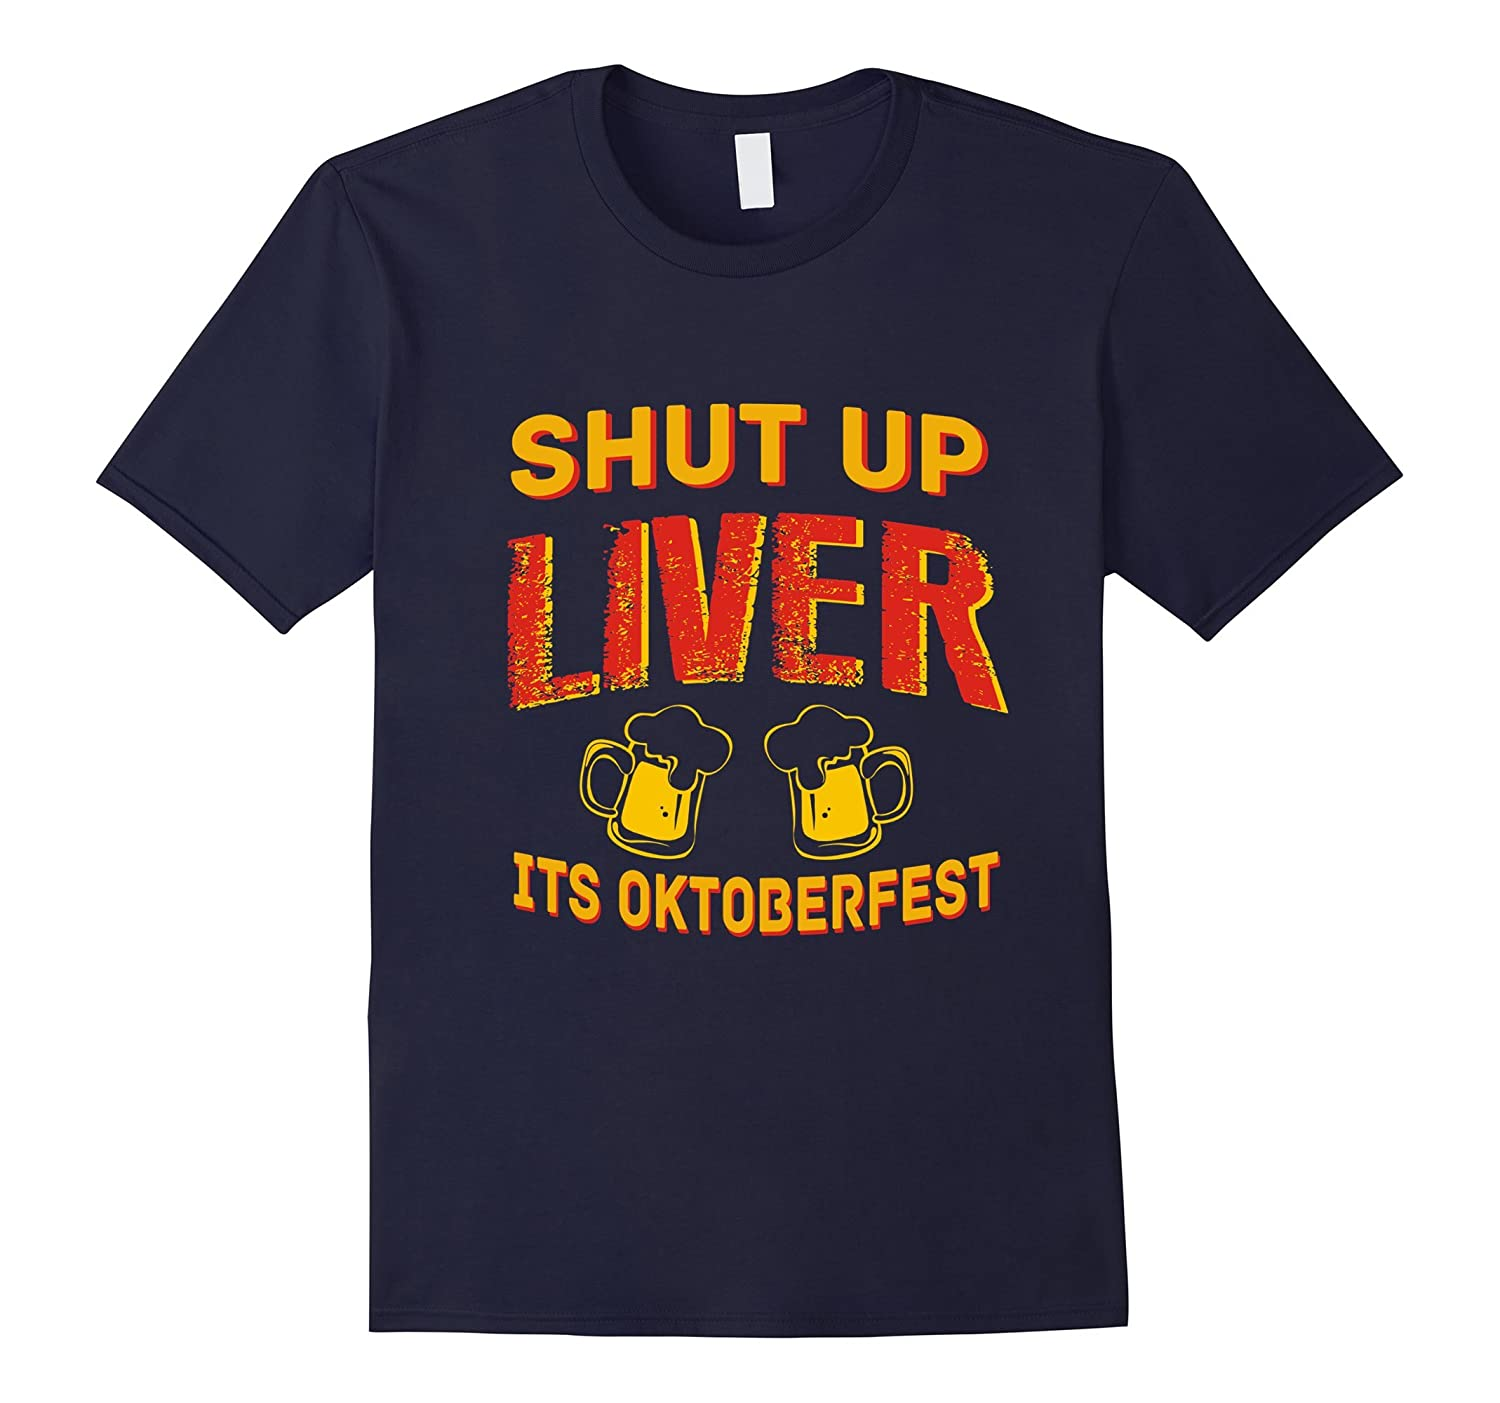 Shut Up Liver Its Oktoberfest Shirt Funny German Beer Bier T-FL